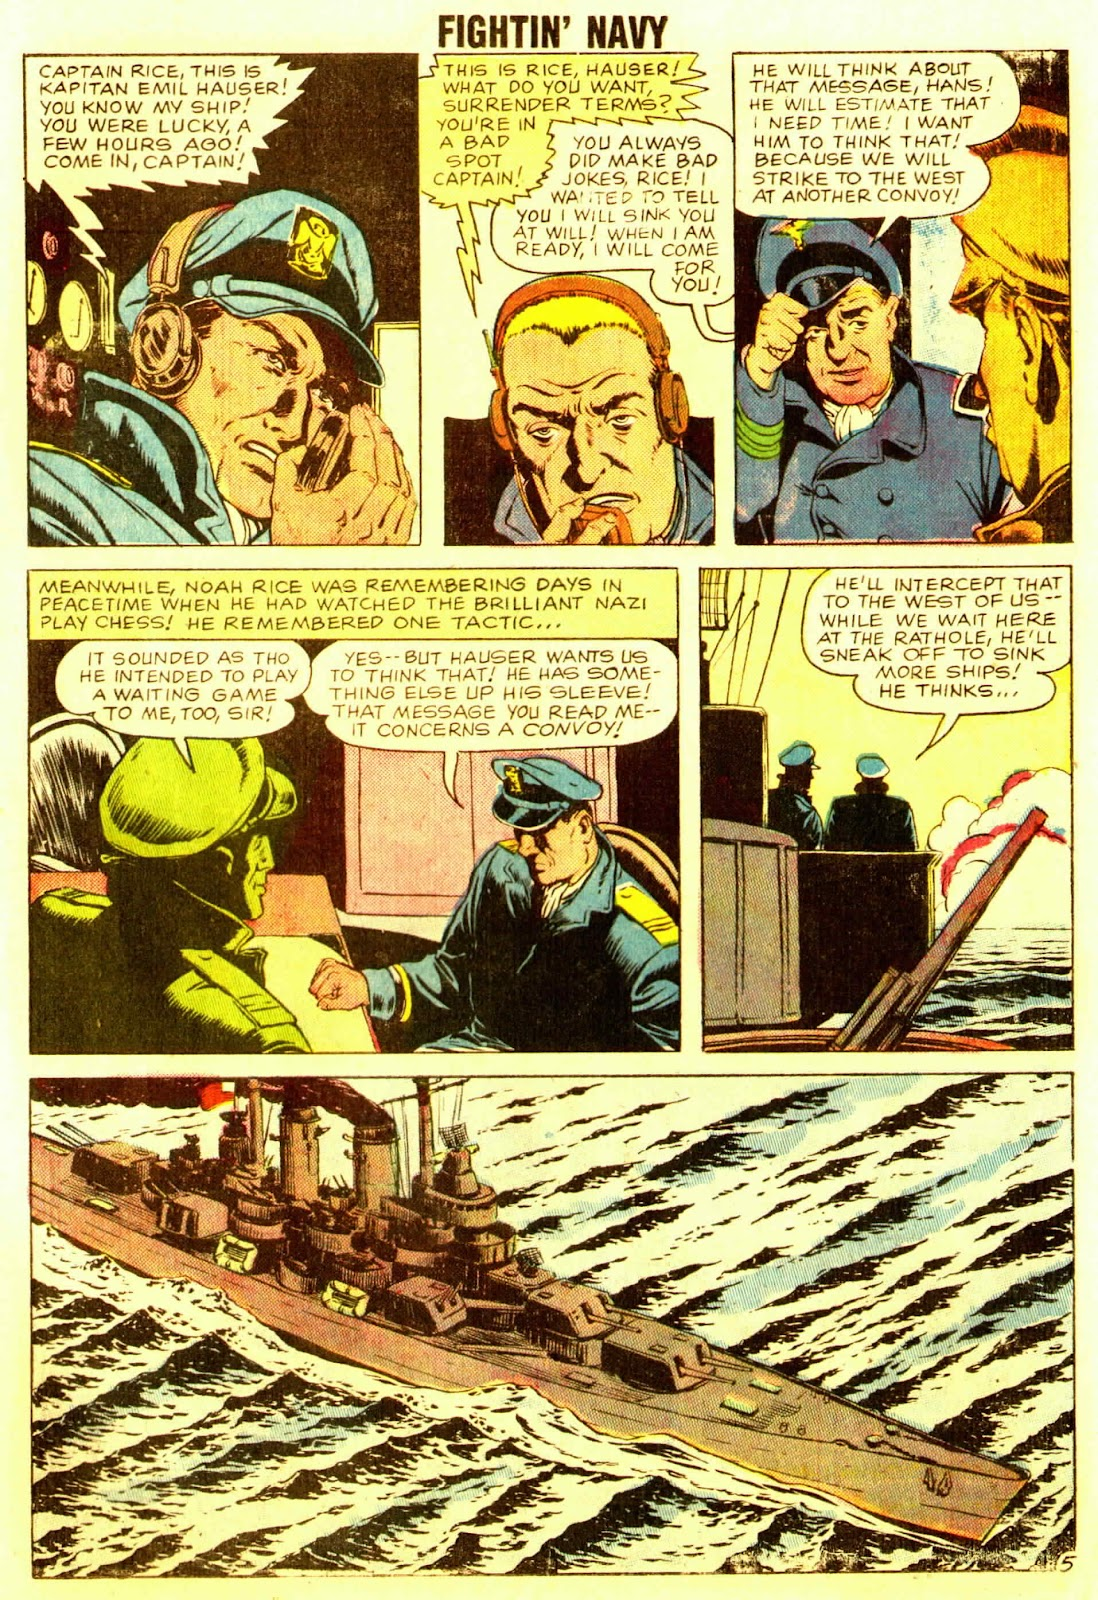 Read online Fightin' Navy comic -  Issue #83 - 79